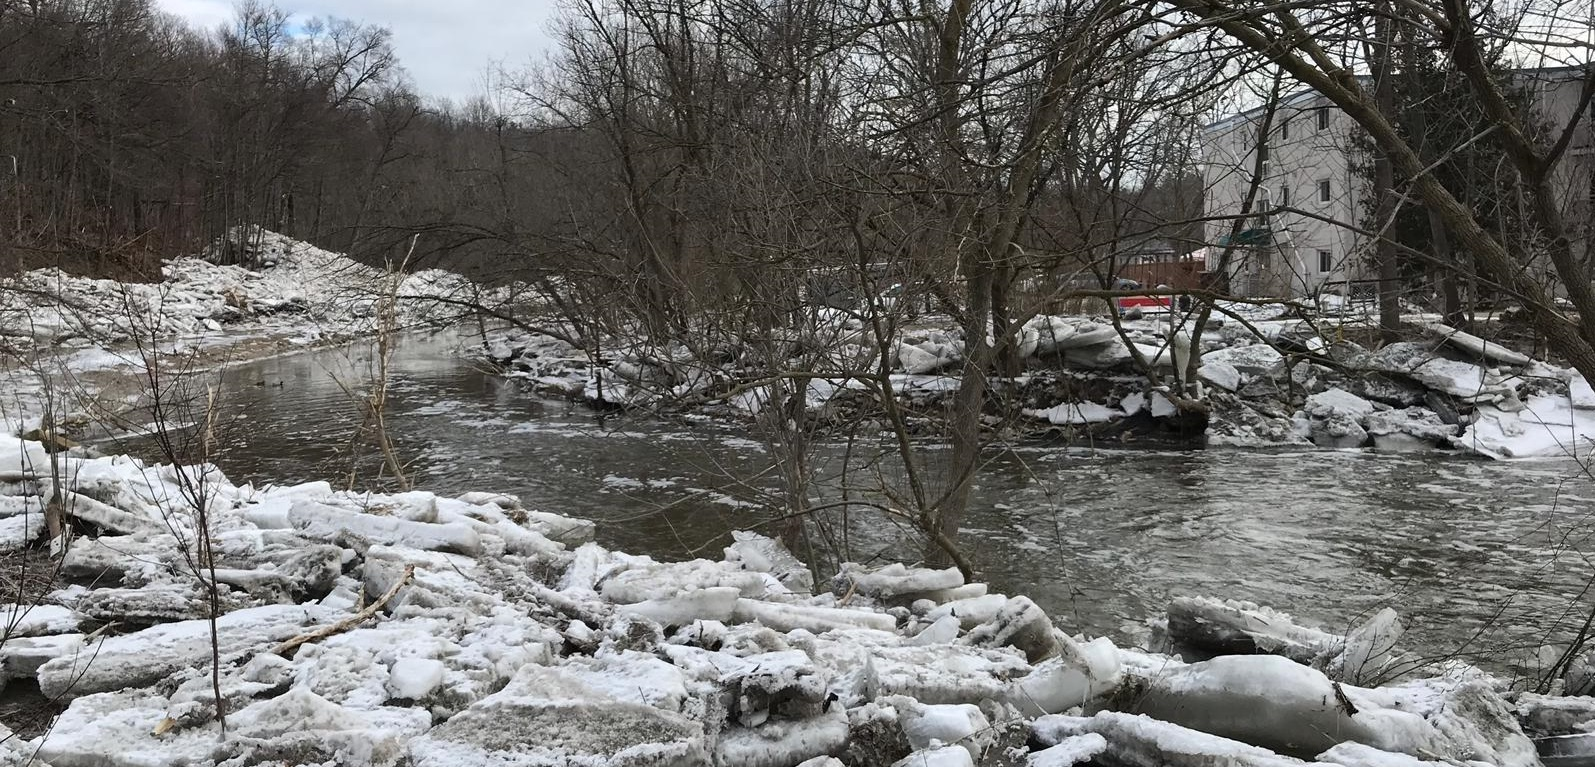 image after flood event in Bolton shows Humber River clear of ice